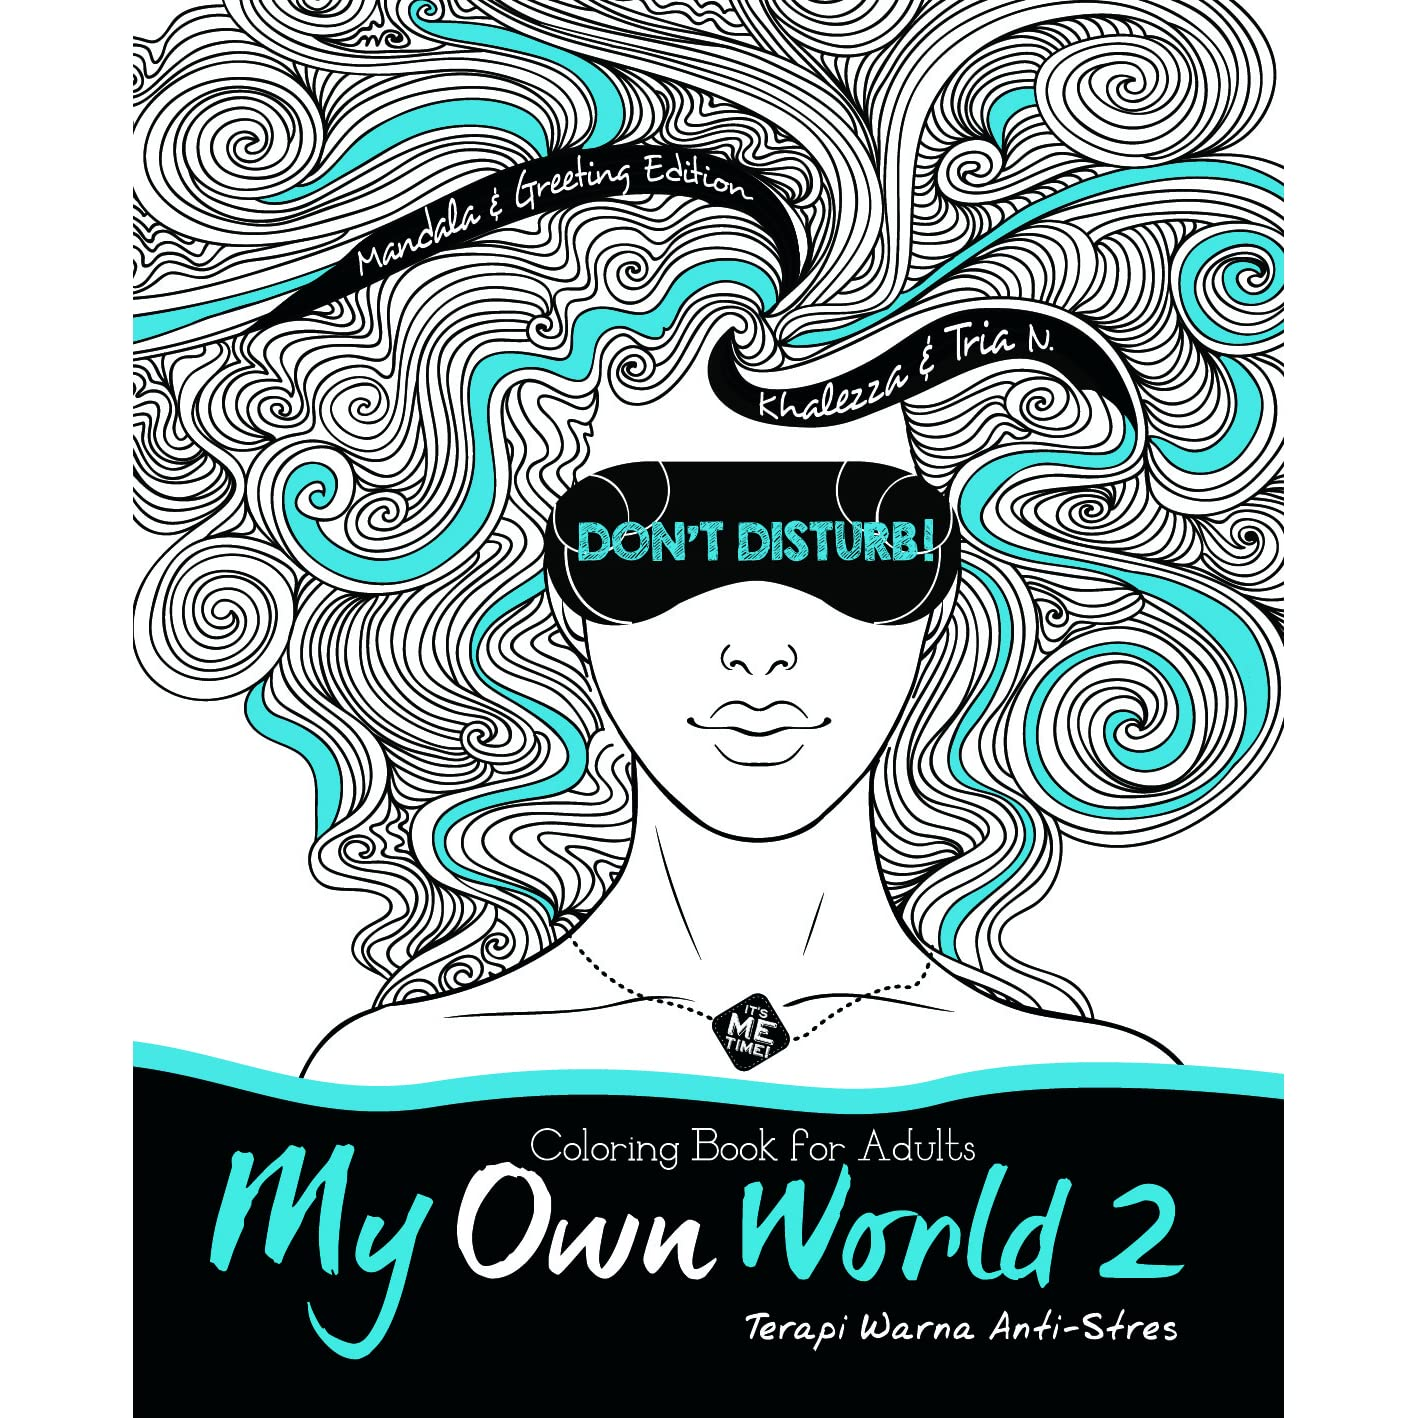 My Own World 2 Coloring Book For Adults By Khalezza